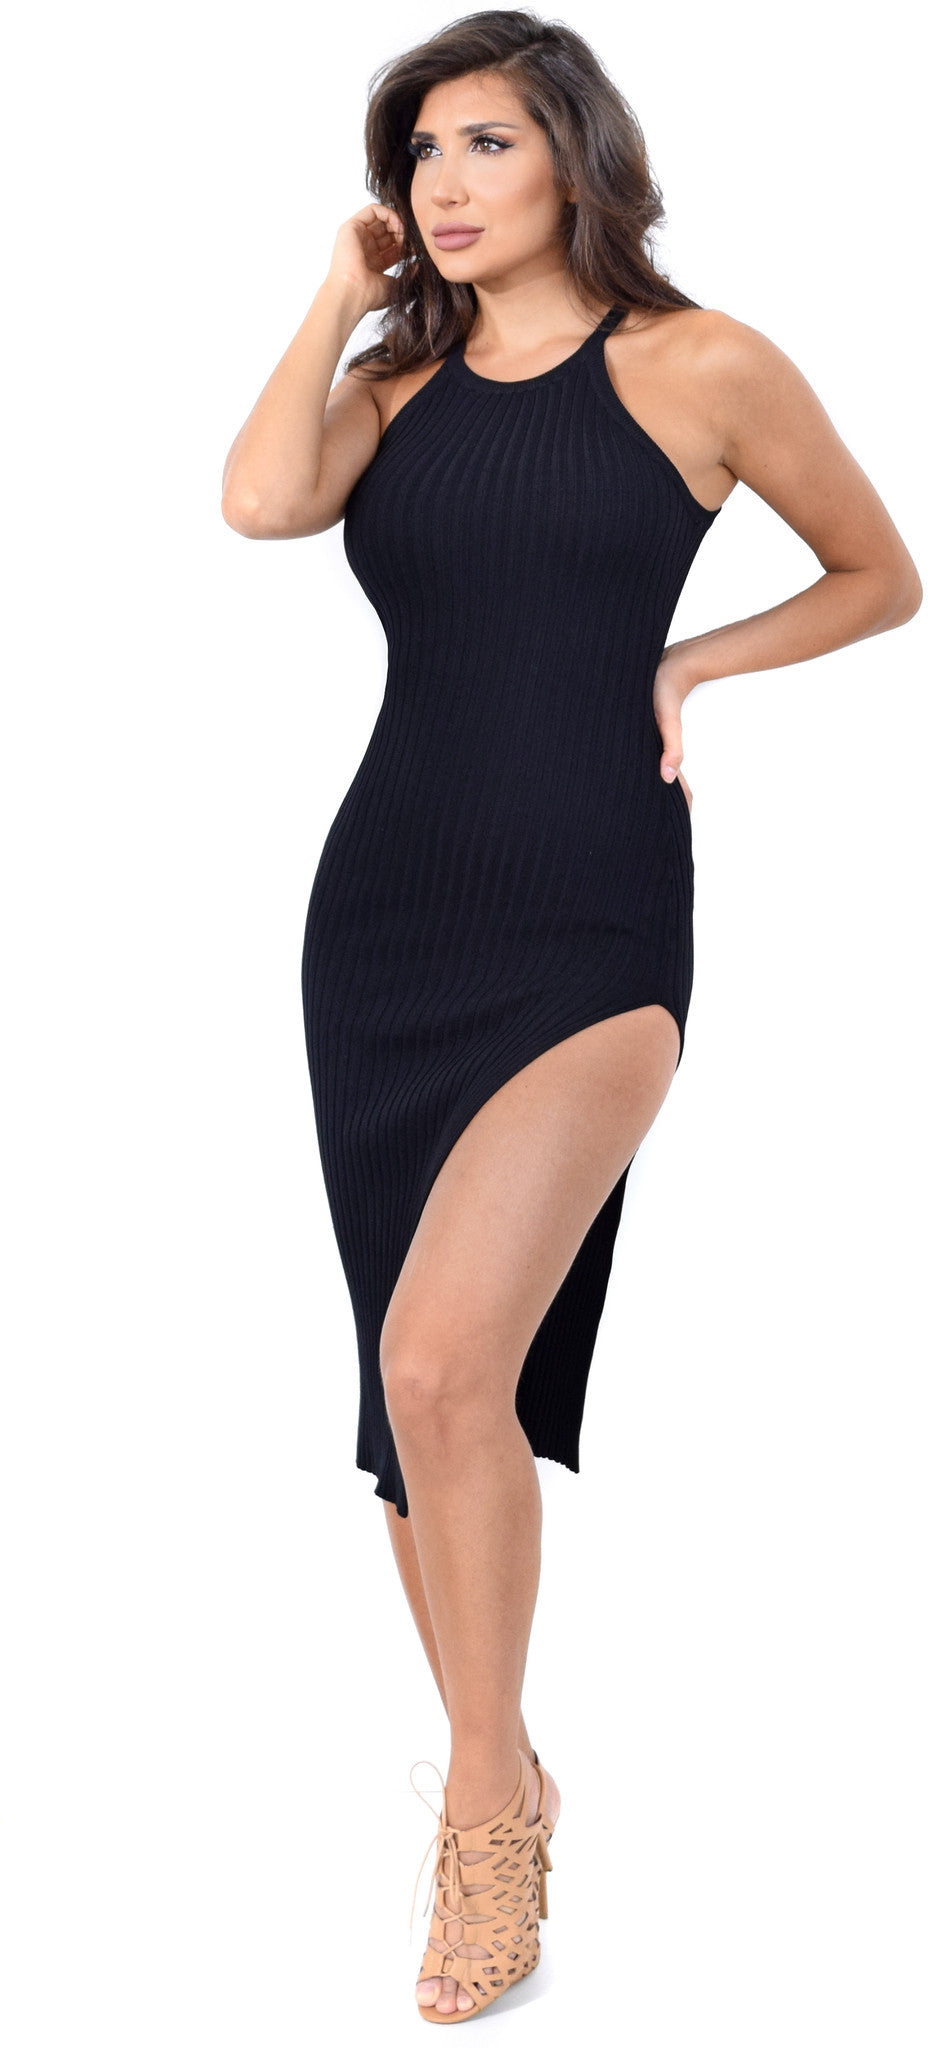 Geonna Black Ribbed High Slit Dress - Emprada